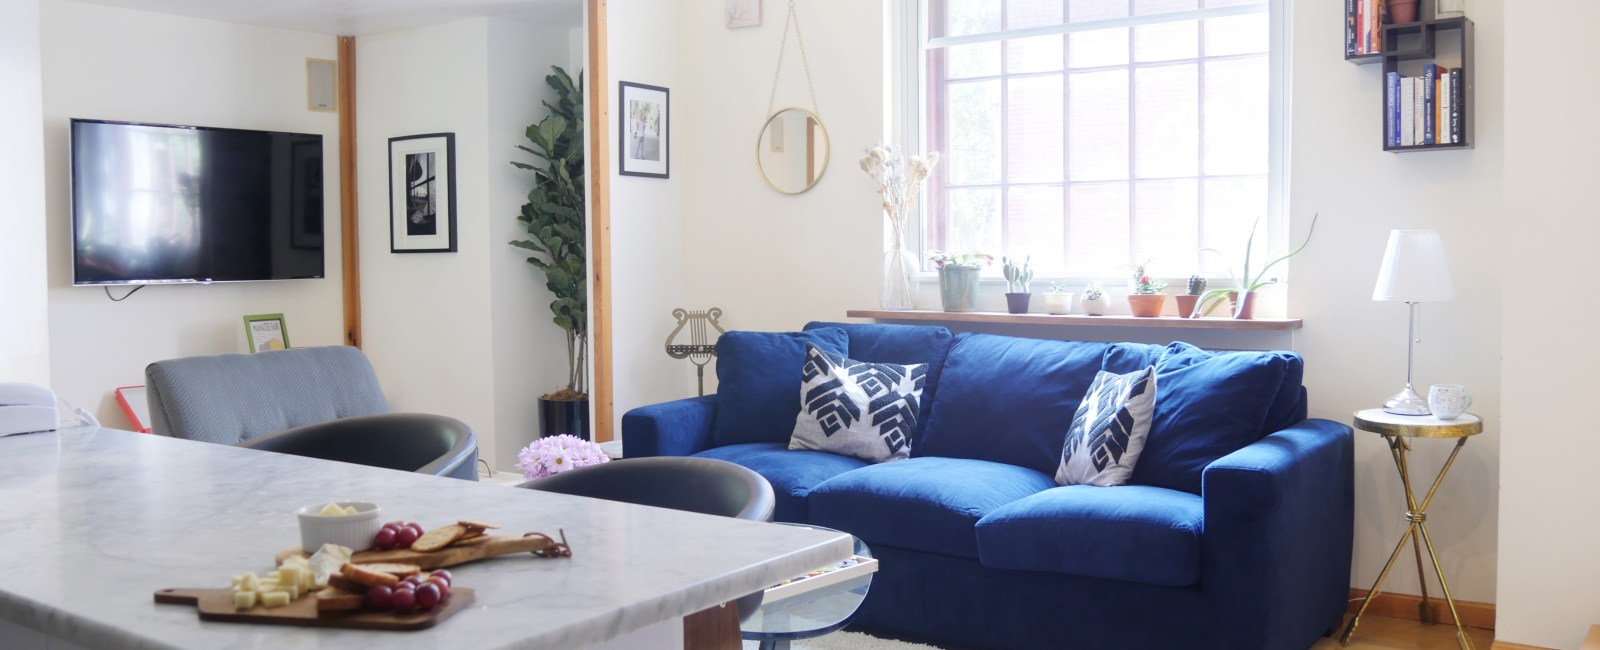 Check Out This Eclectic Apartment Built in a Former Church